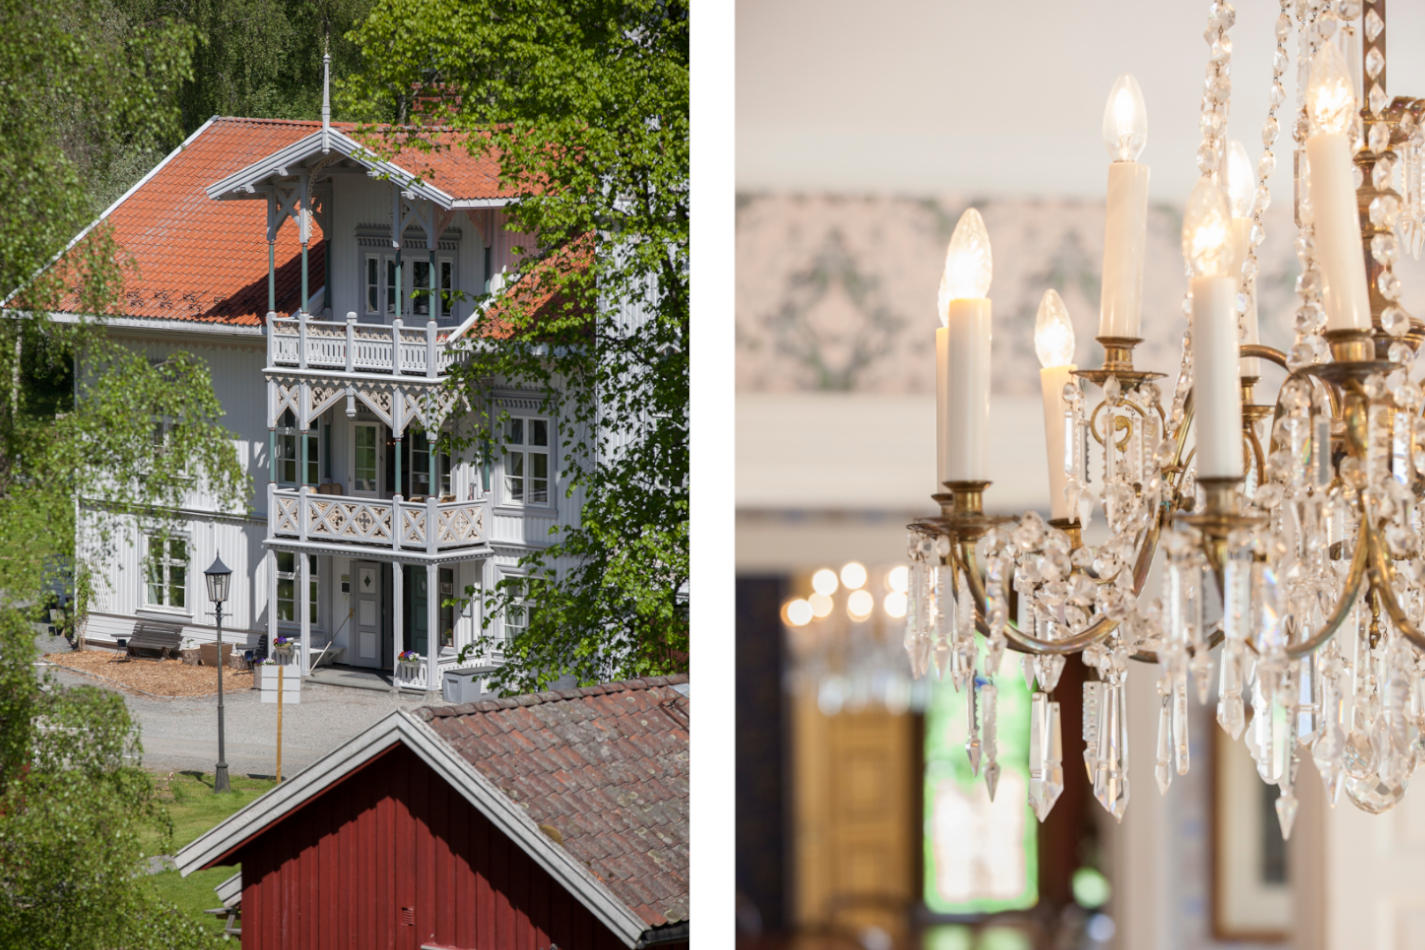 Eidsverket | Work and relaxation in stately surroundings | Scan Magazine